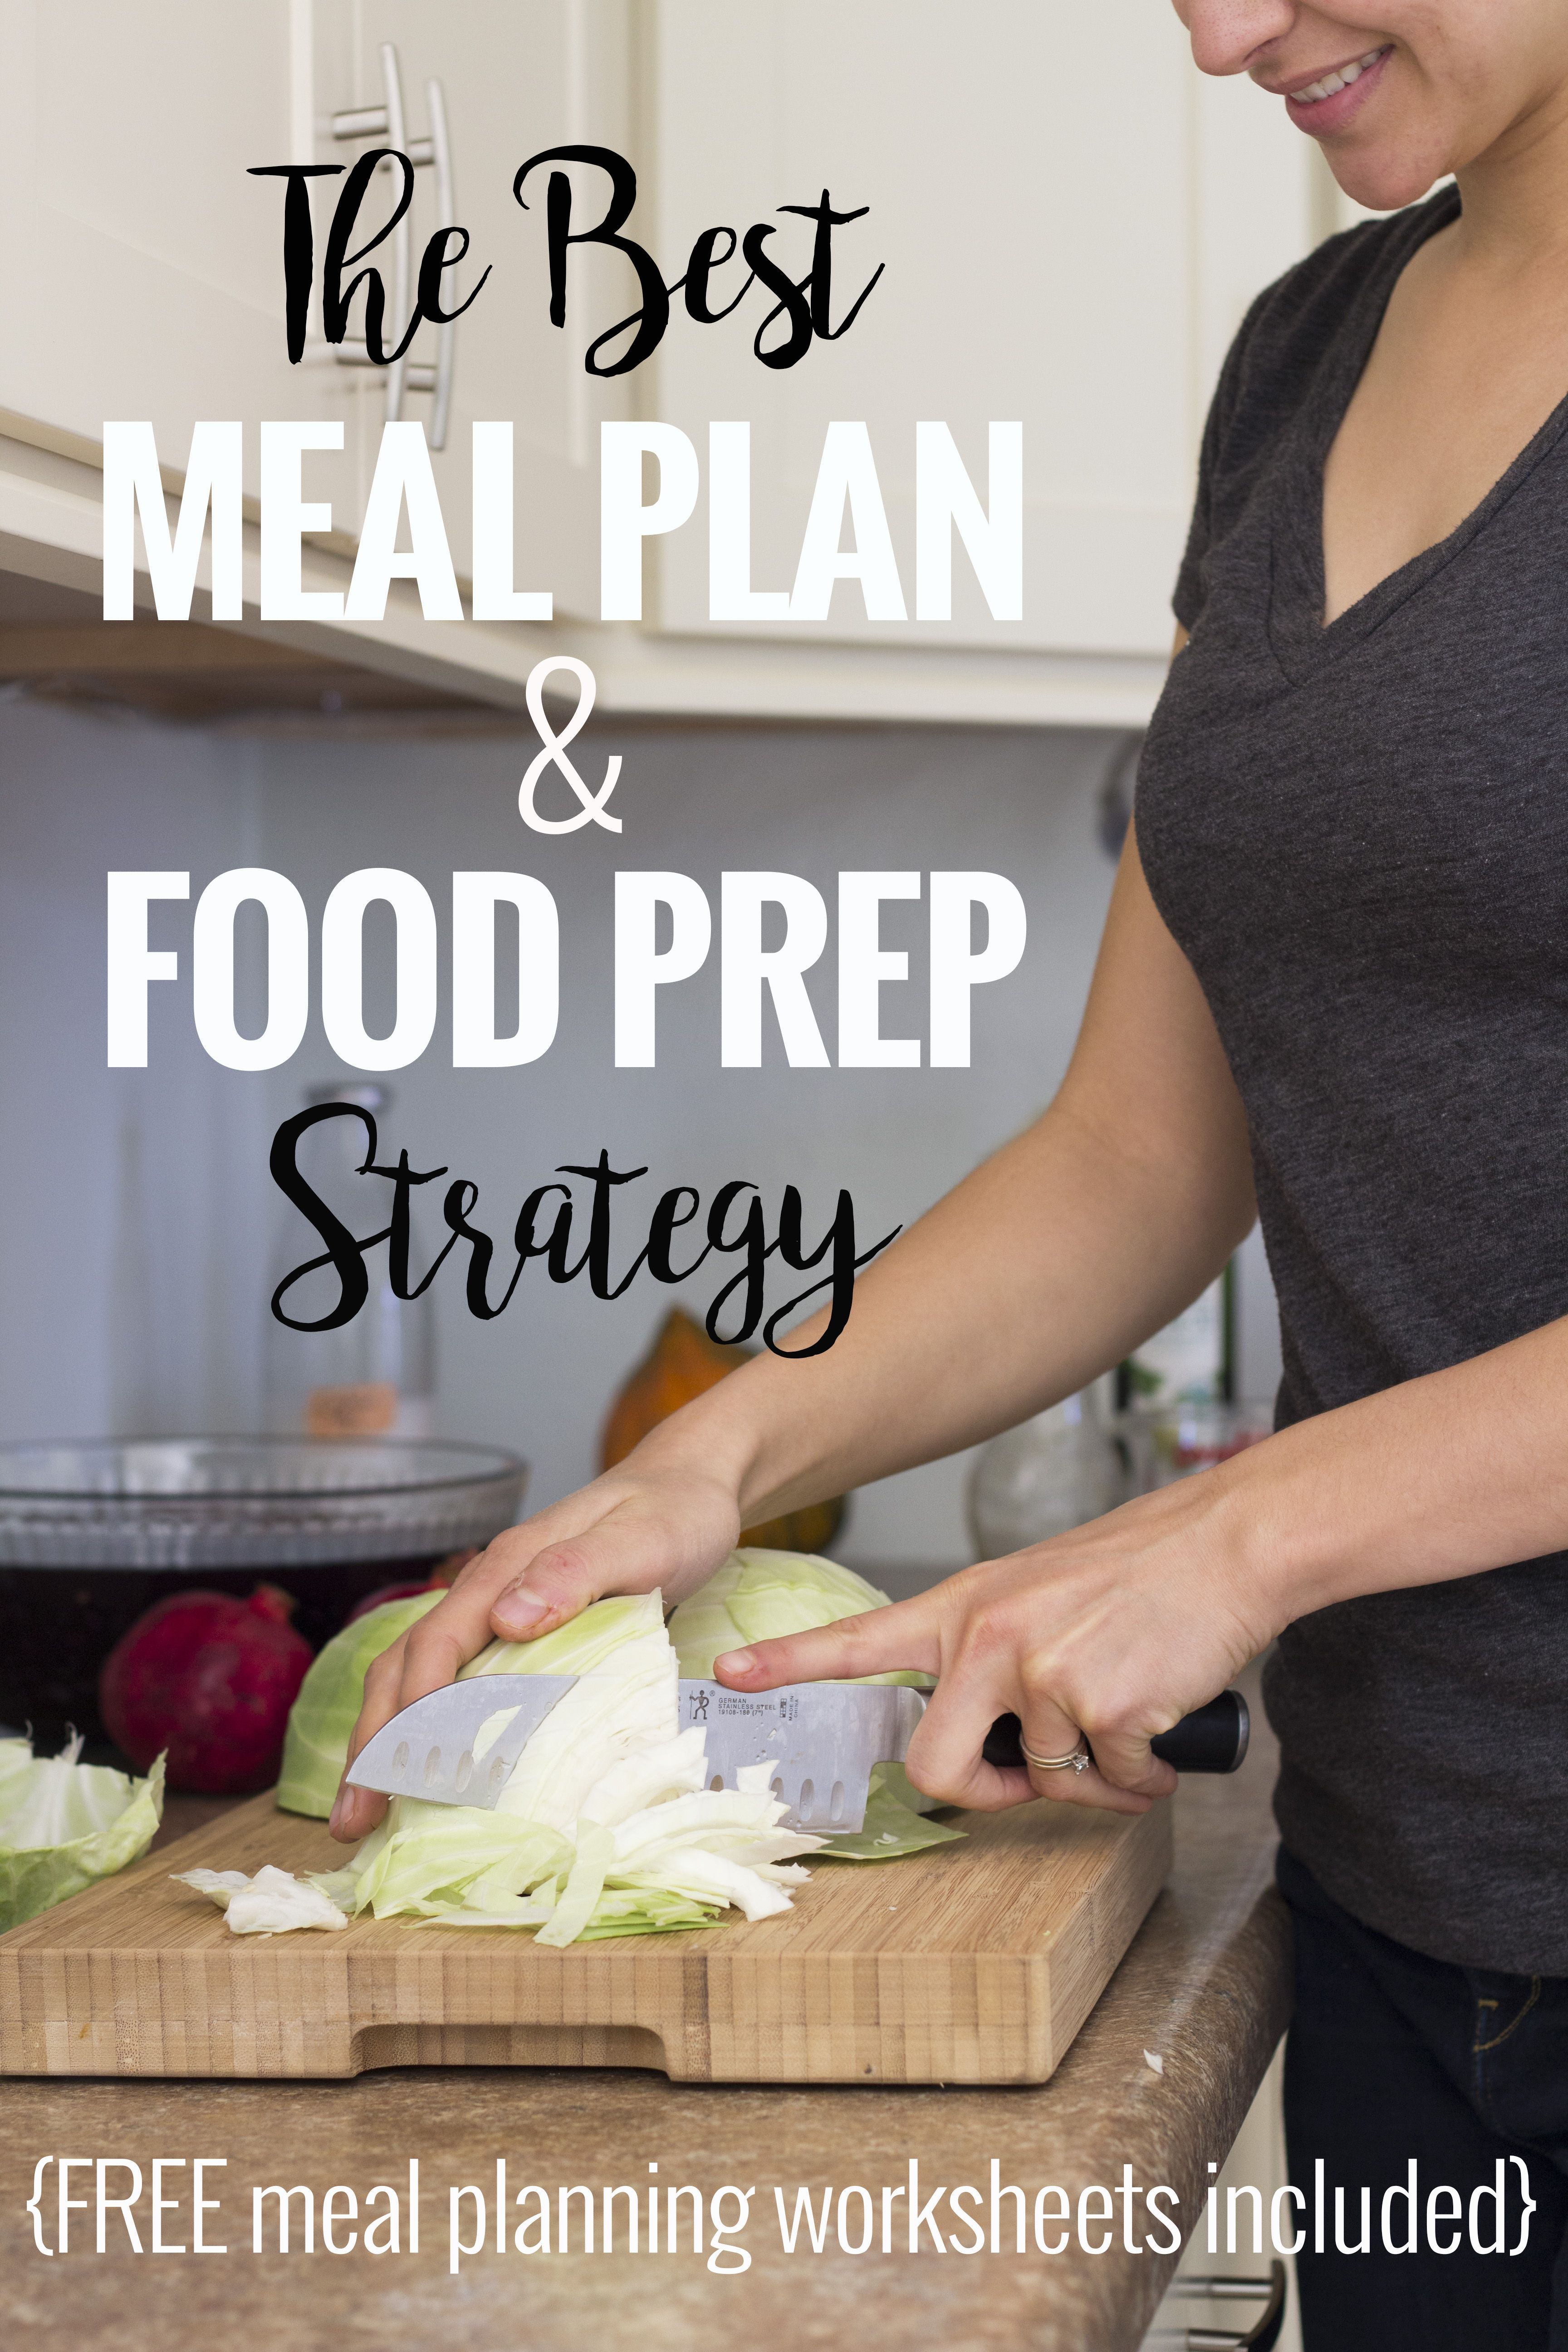 The Best Meal Plan And Food Prep Strategy